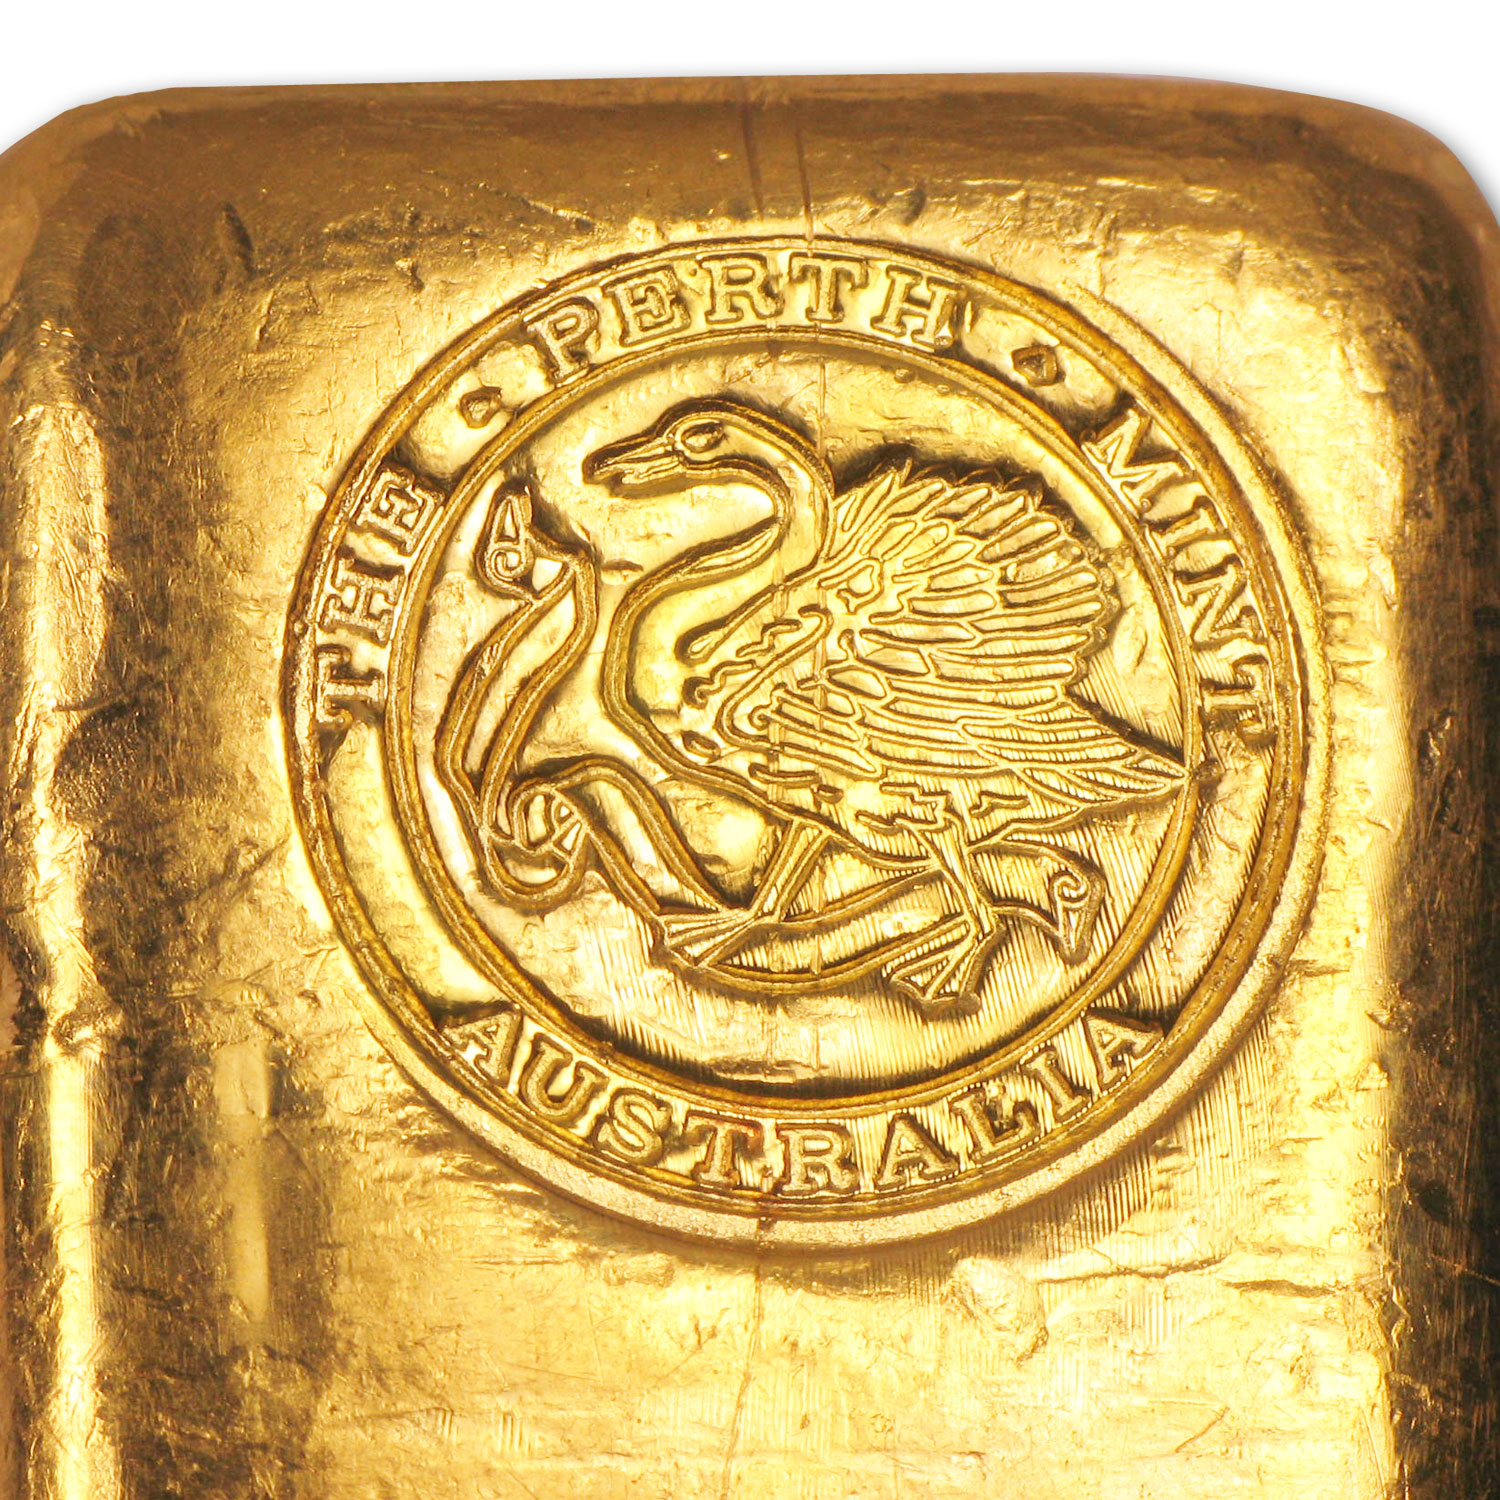 10 oz Gold Bar - Perth Mint (Poured, Old Style Swan)